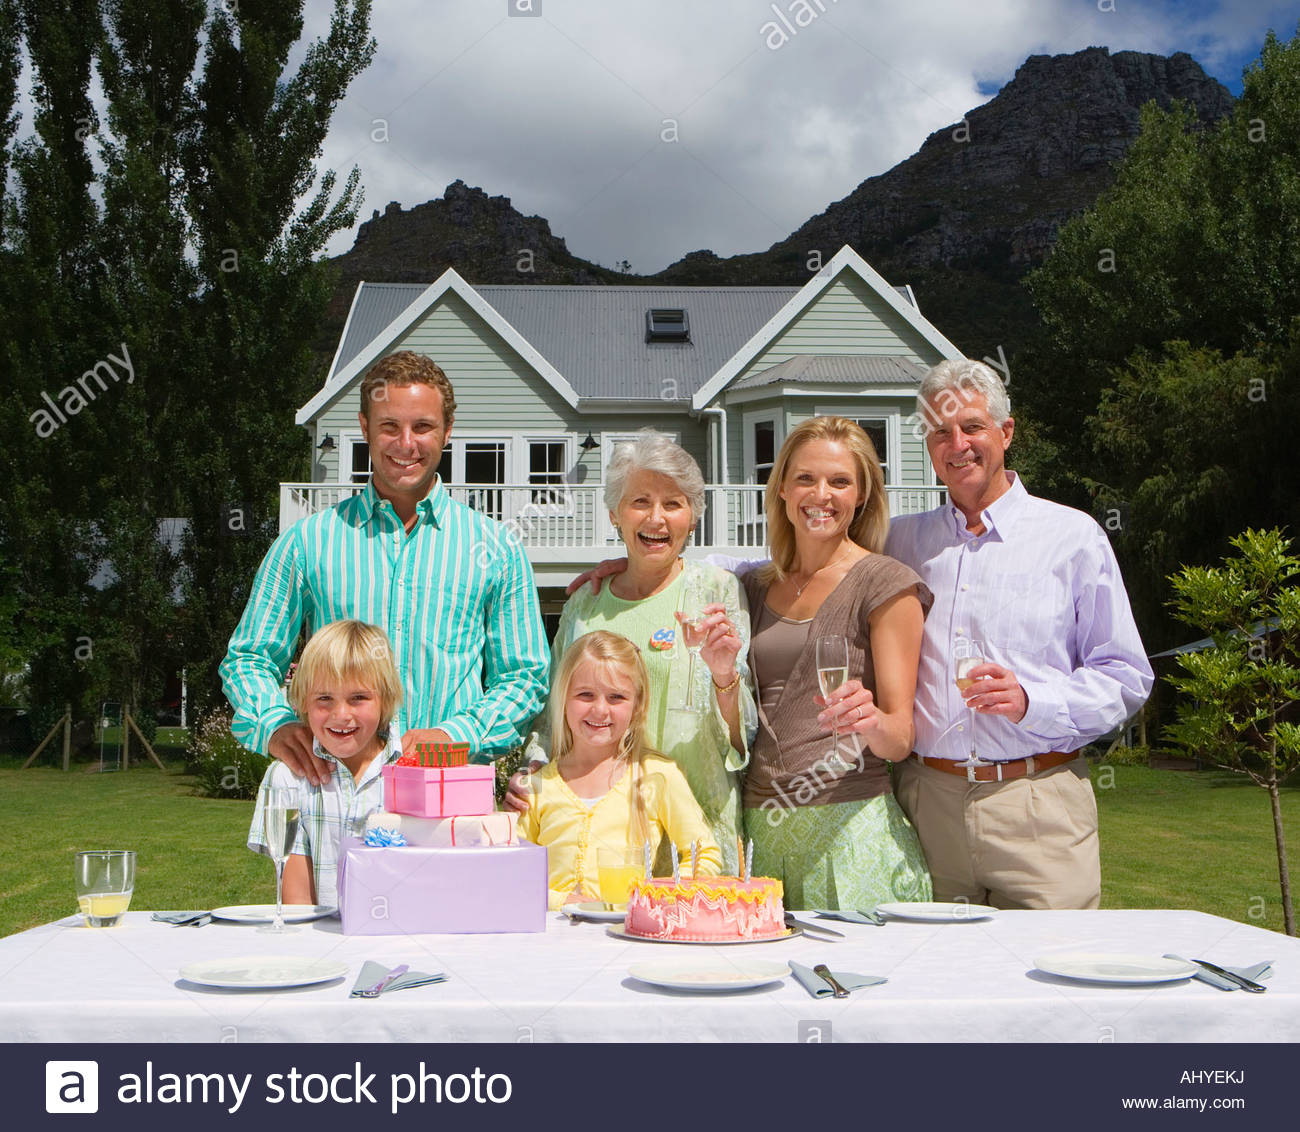 Three generation family celebrating birthday in summer garden in front of house smiling portrait - Stock Image